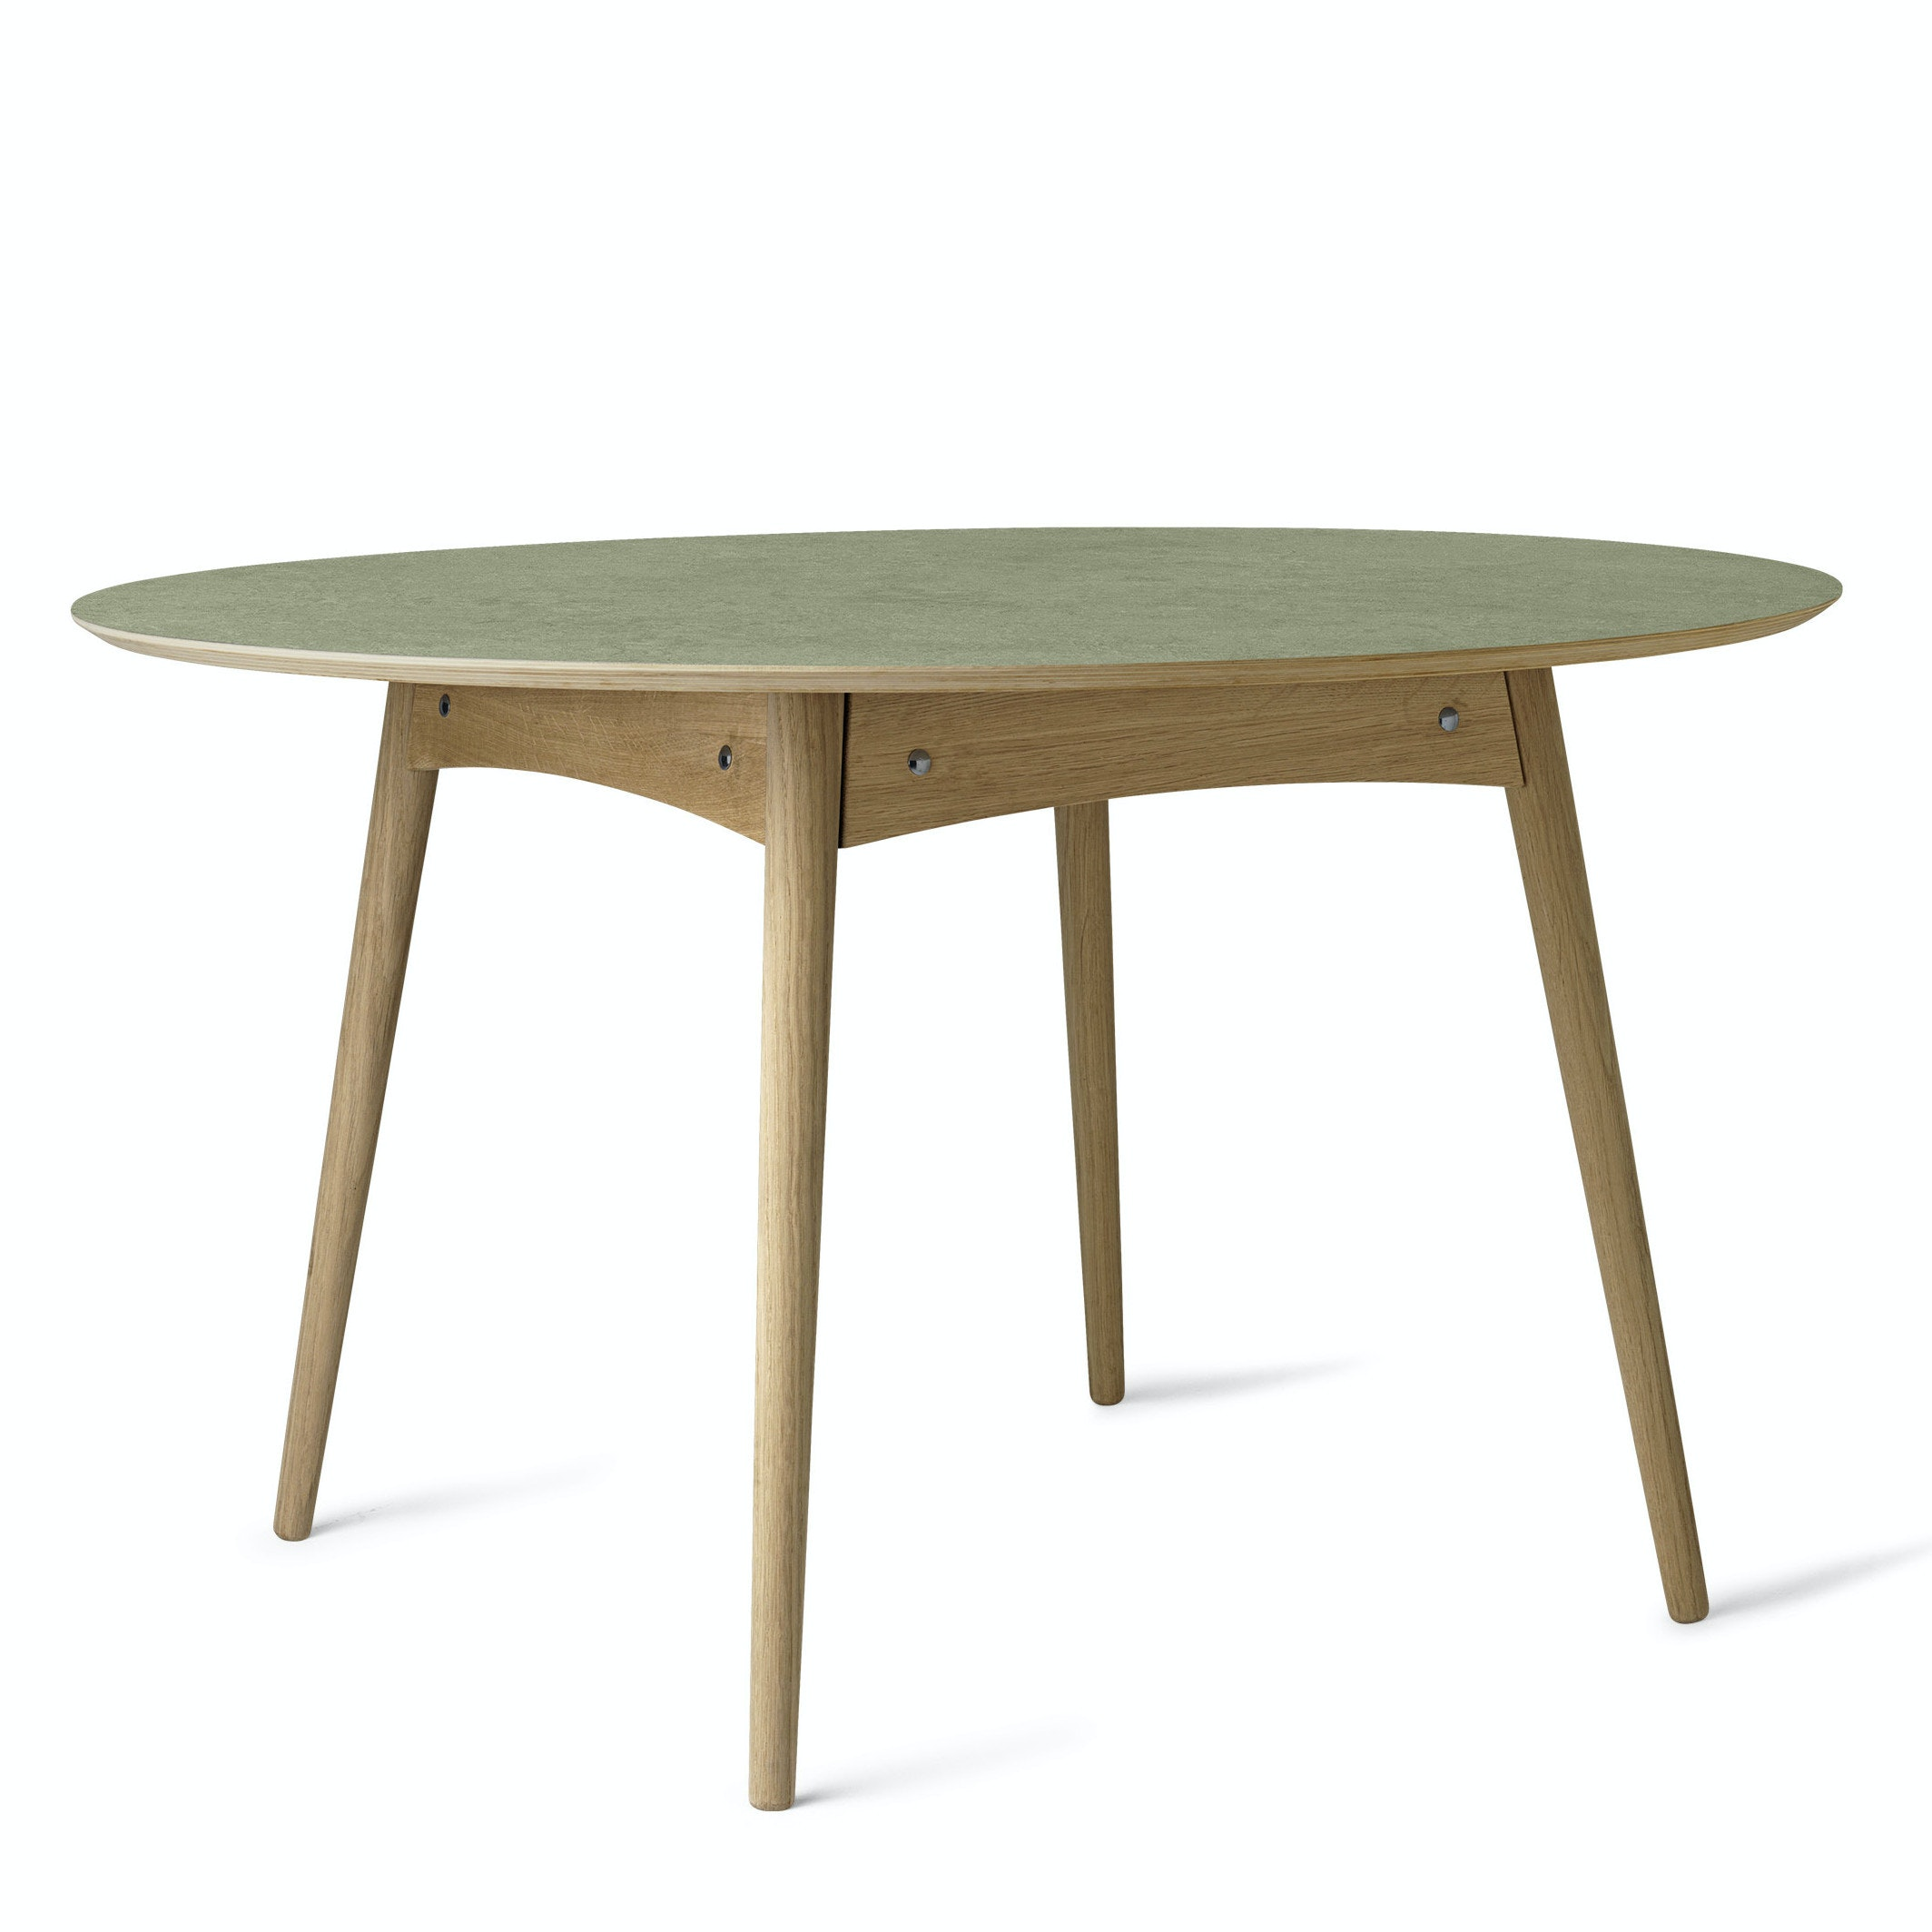 Mater Green Eat Dining Table Haute Living ...